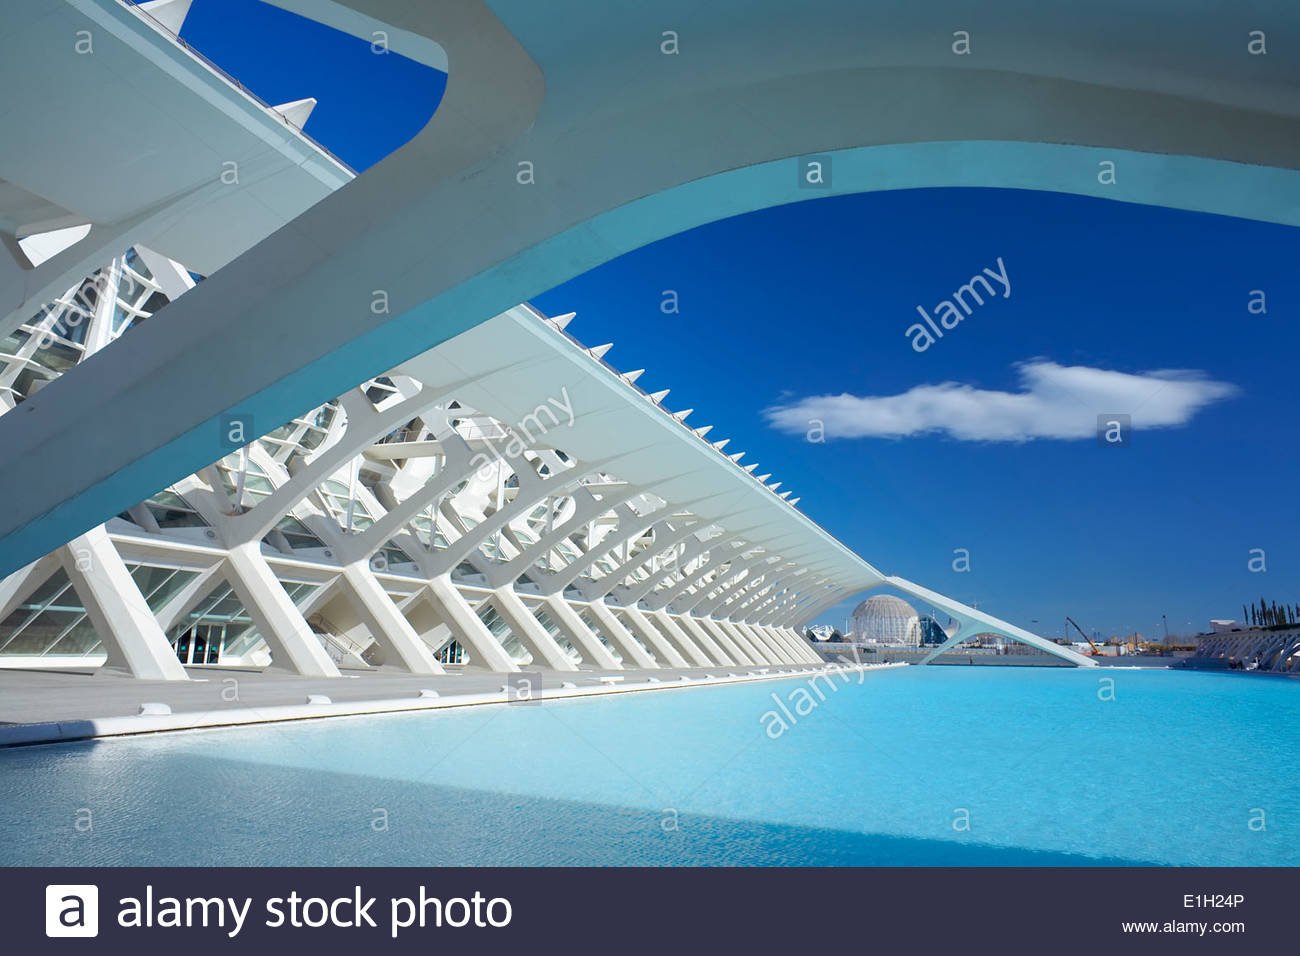 Architectural detail of City of Arts and Sciences, Valencia, Spain - Stock Image